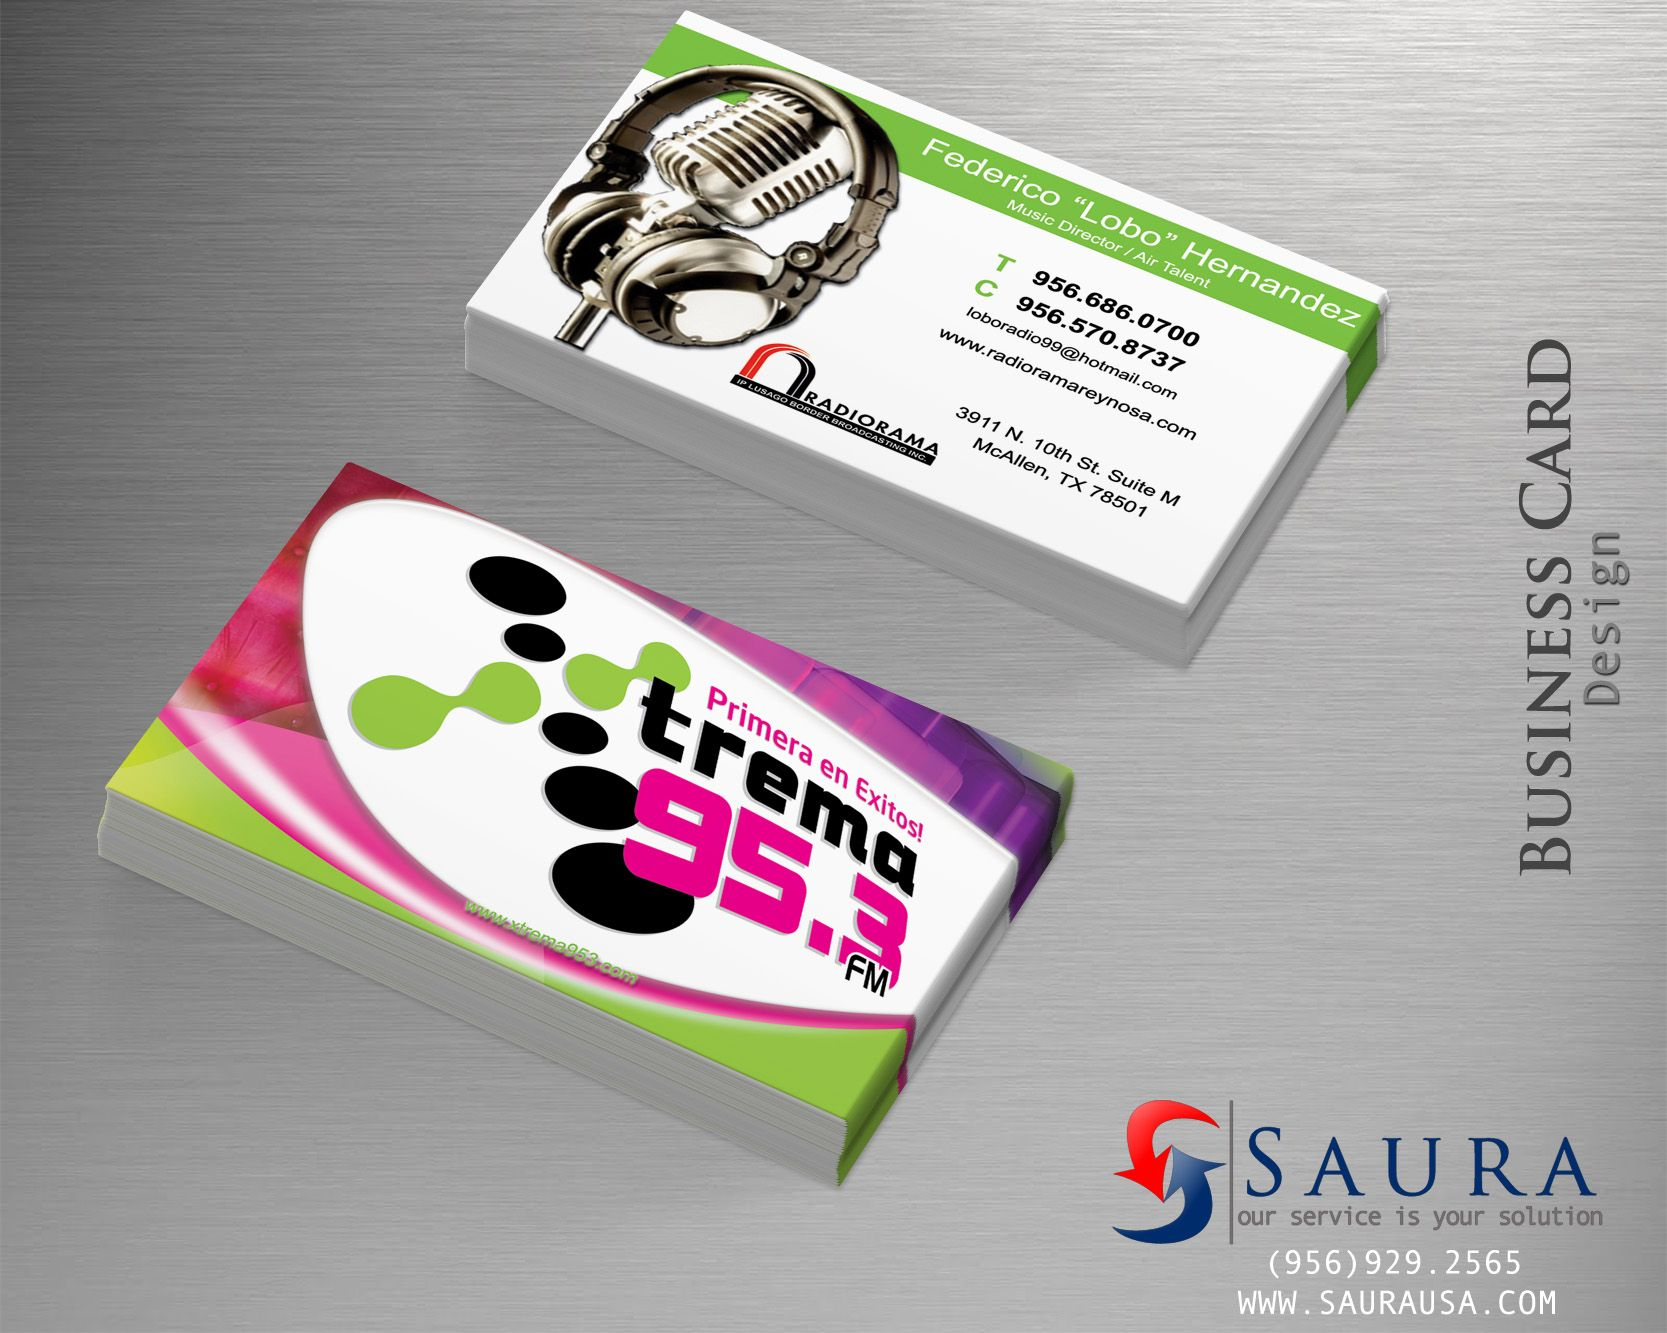 Business Card Design For Radio Station Business Card Design Card Design Cards